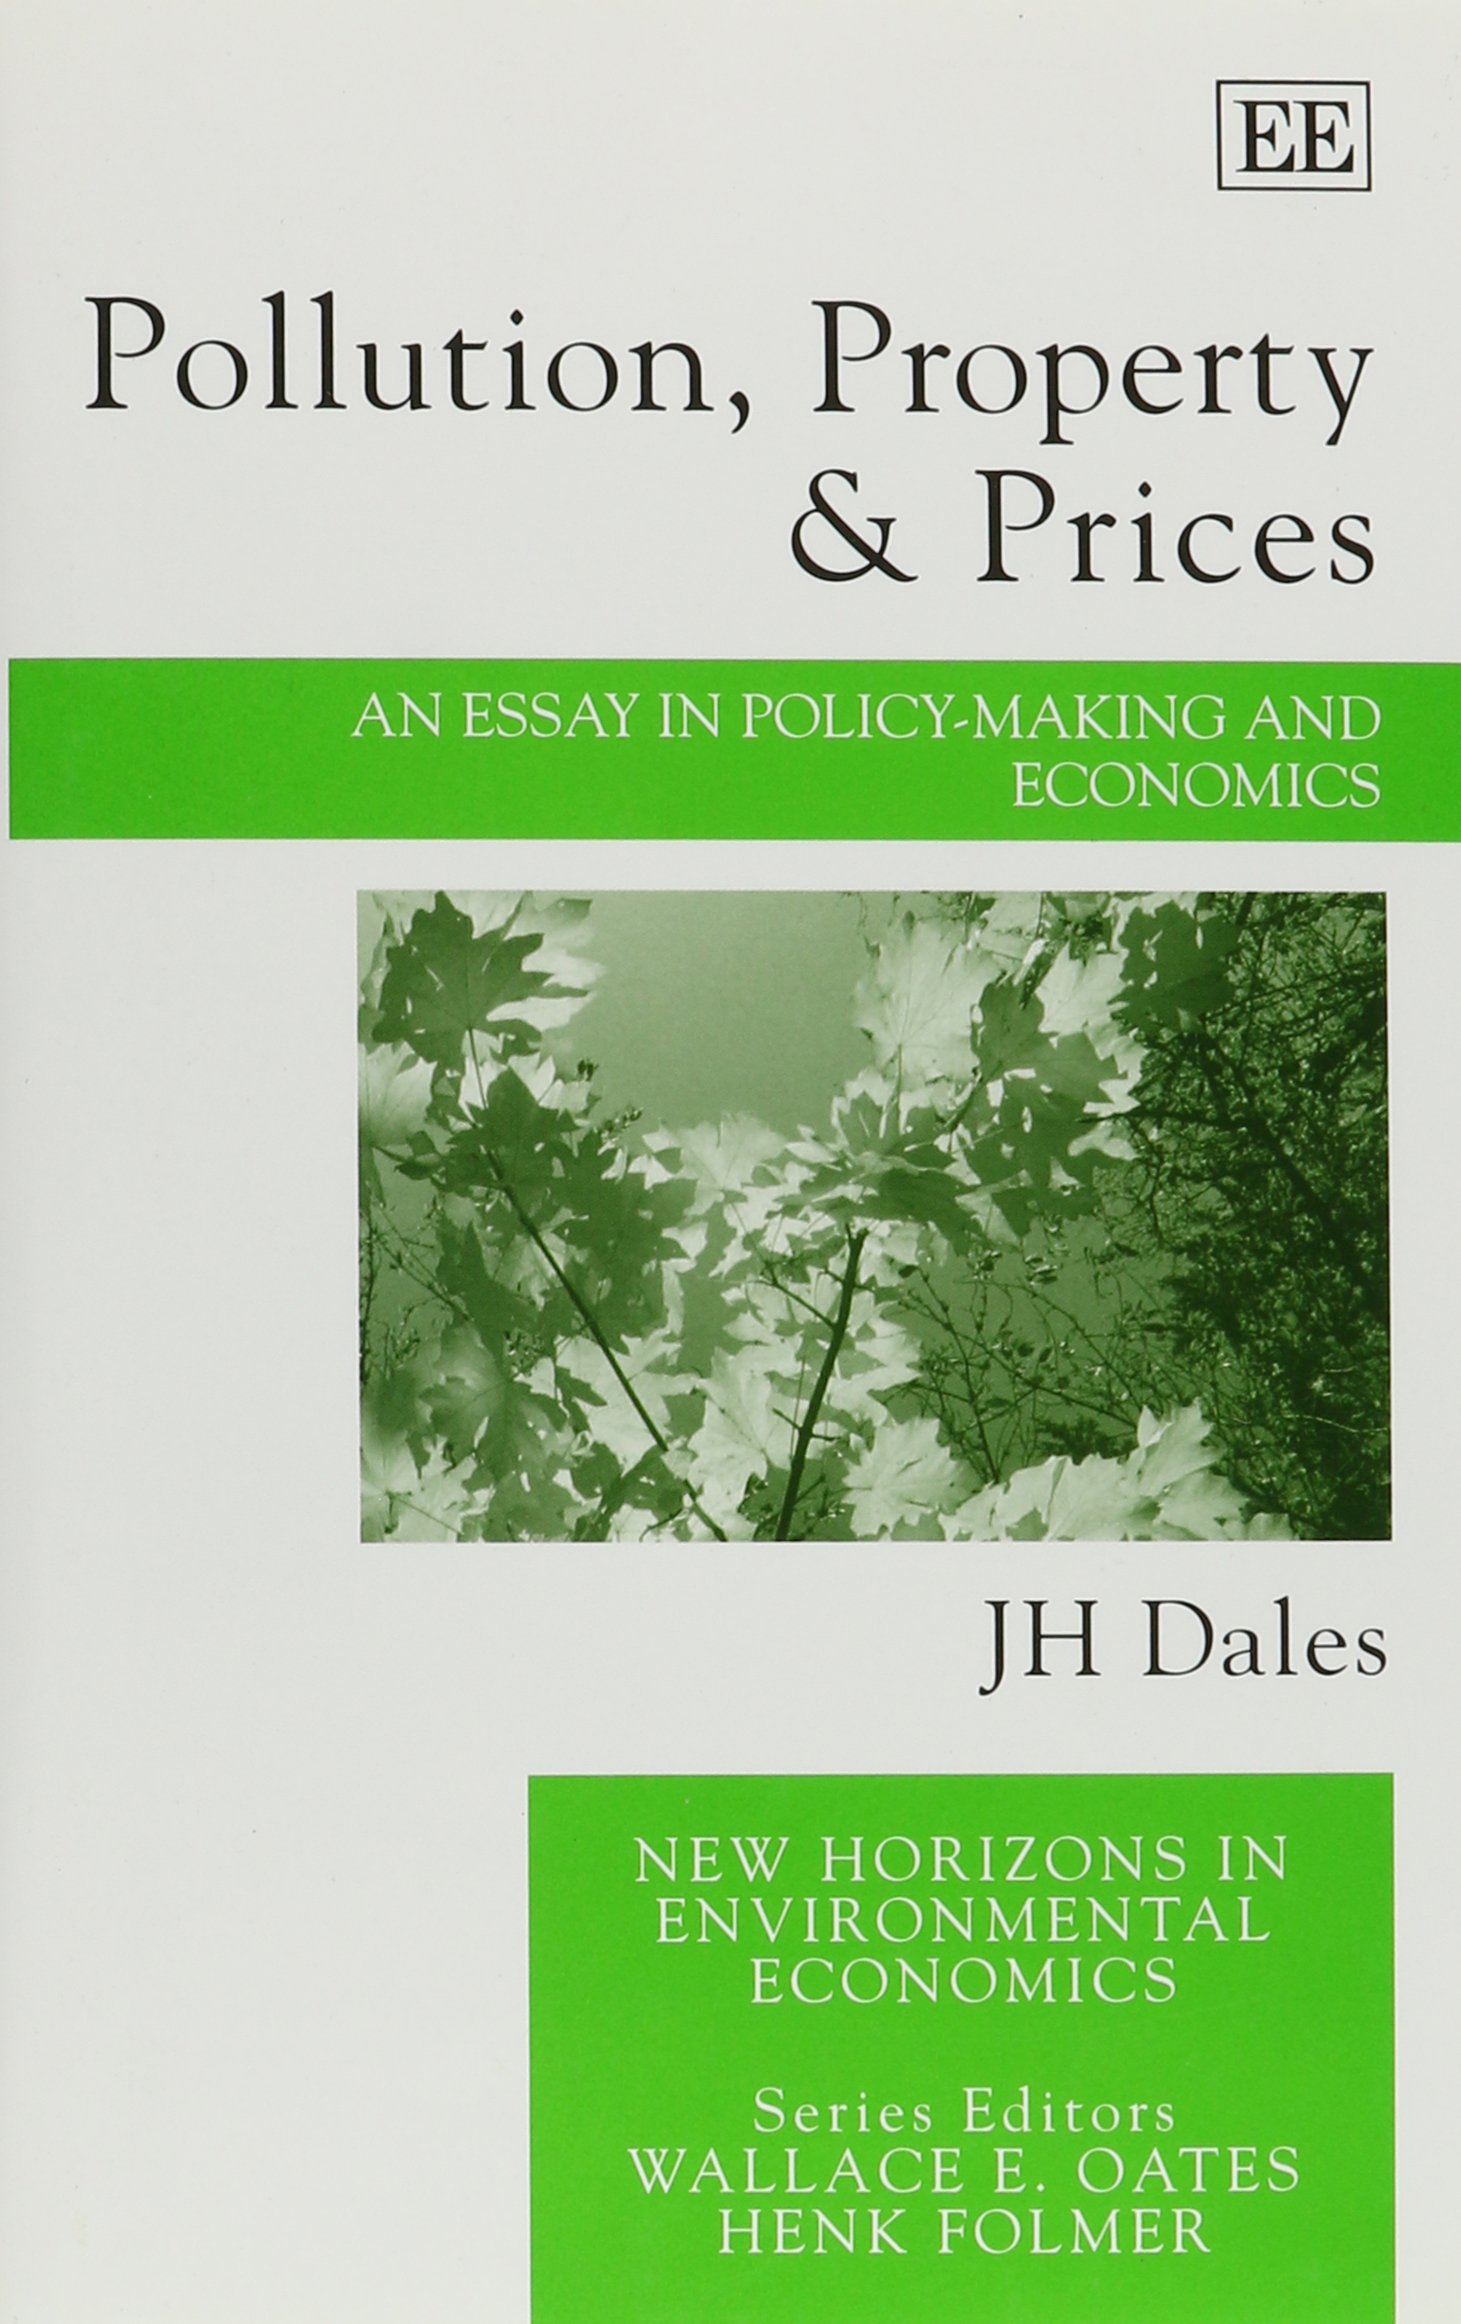 pollution property prices an essay in policy making and pollution property prices an essay in policy making and economics new horizons in environmental economics j h dales 9781840648423 amazon com